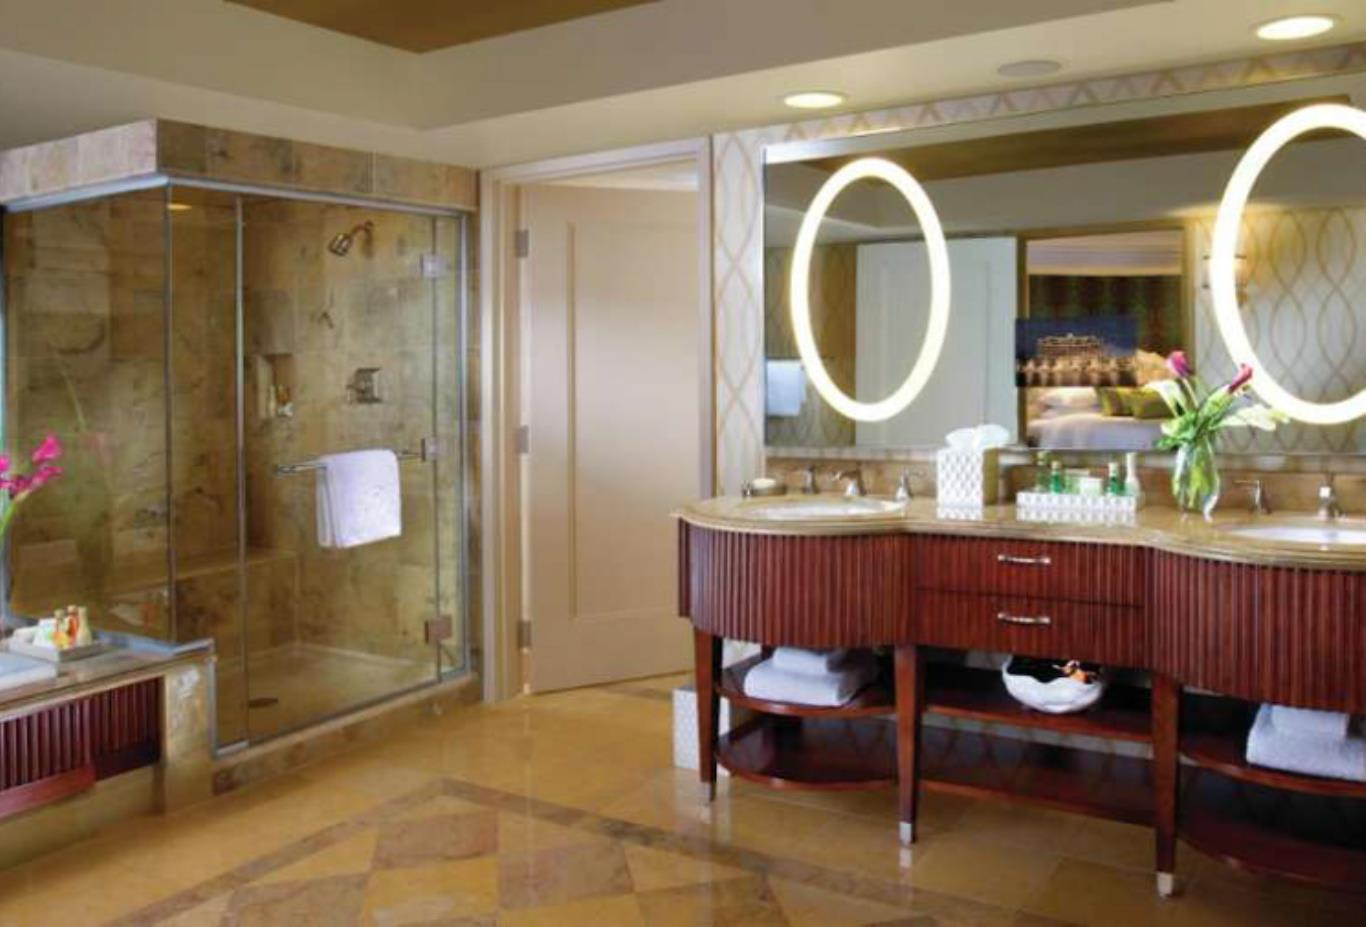 Salone Suite bathroom